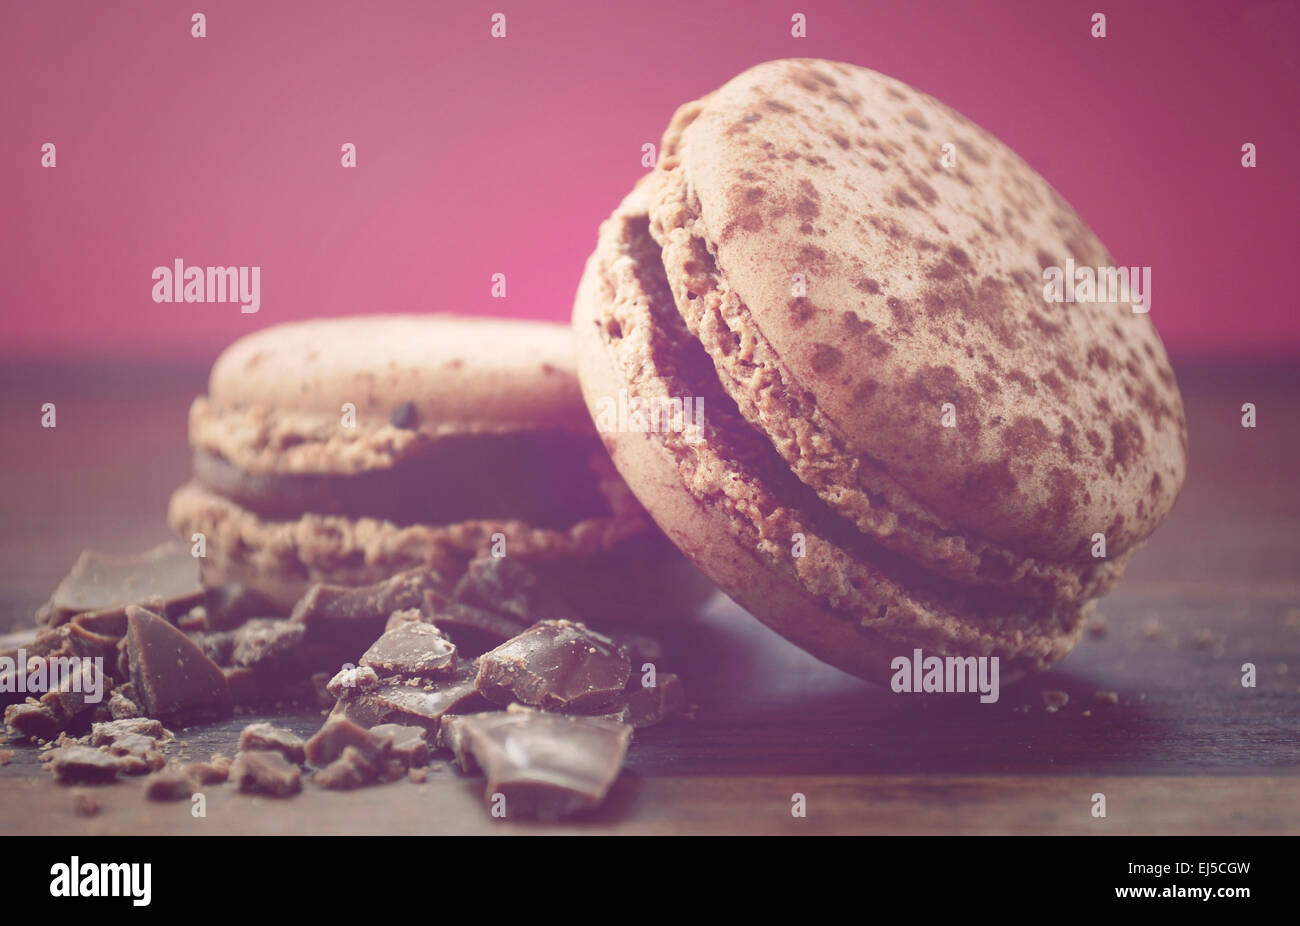 Chocolate Macaroons, with applied retro vintage style filters. - Stock Image